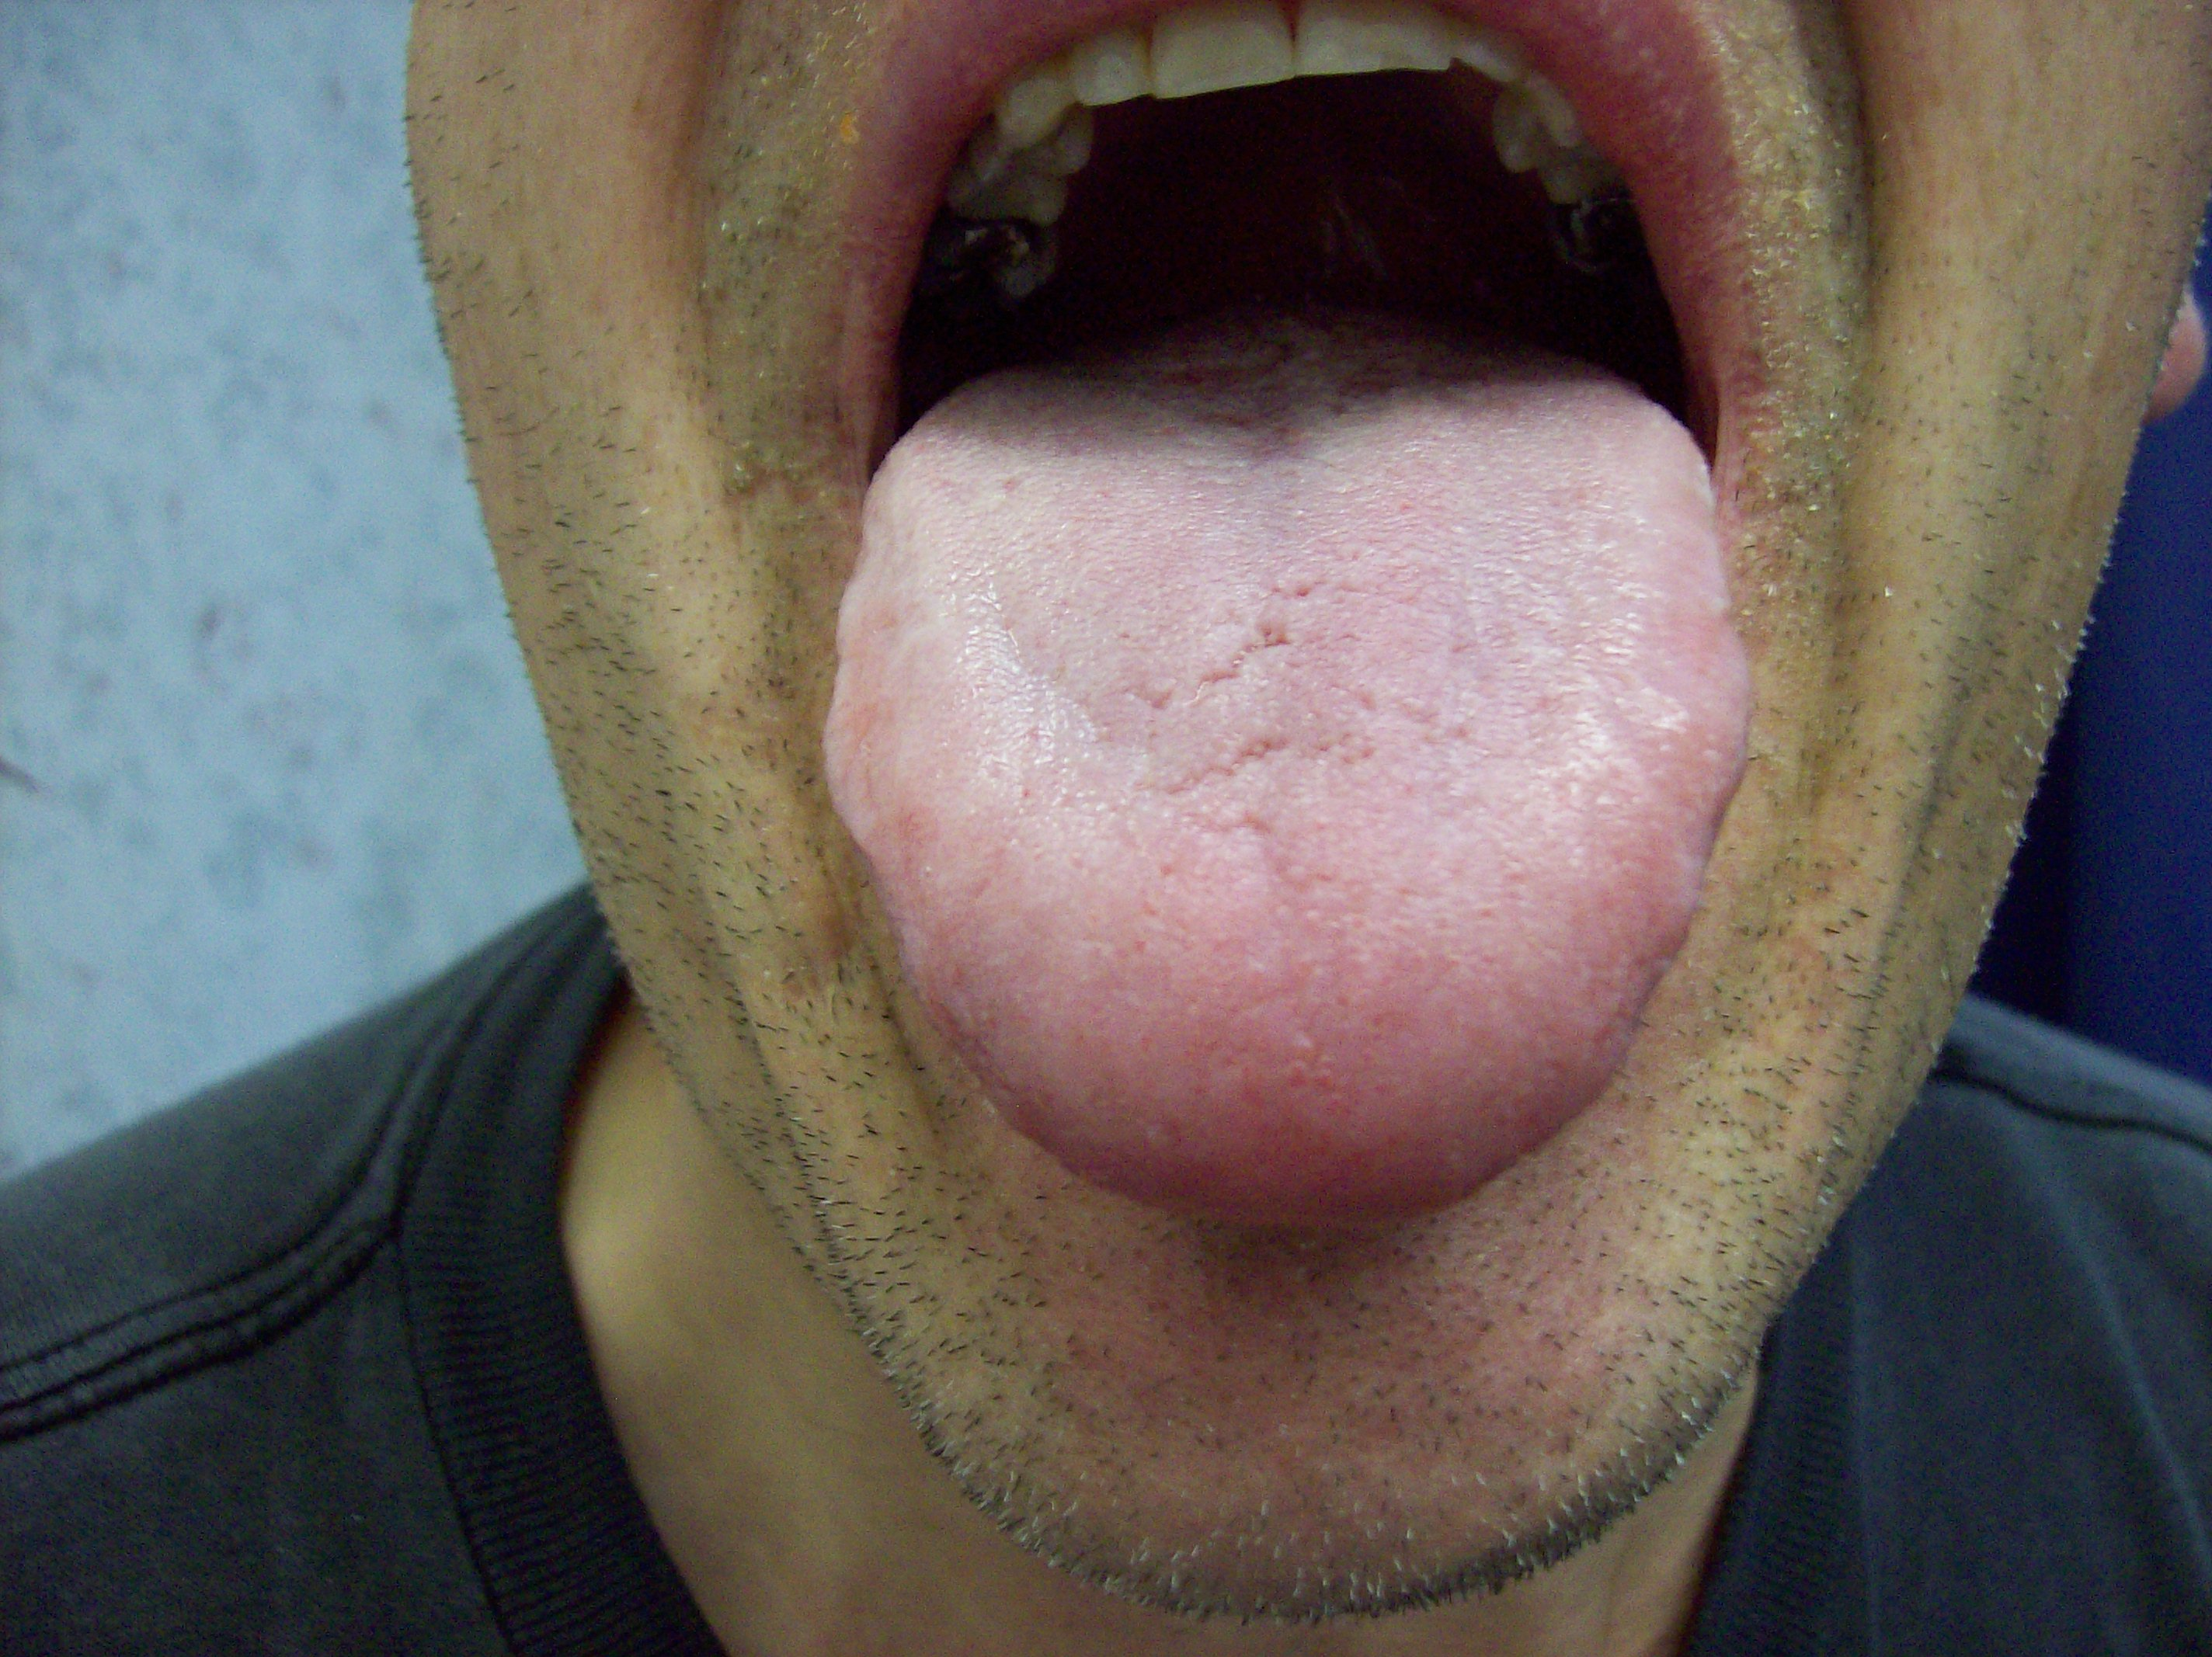 Normal Tongue - Bing images